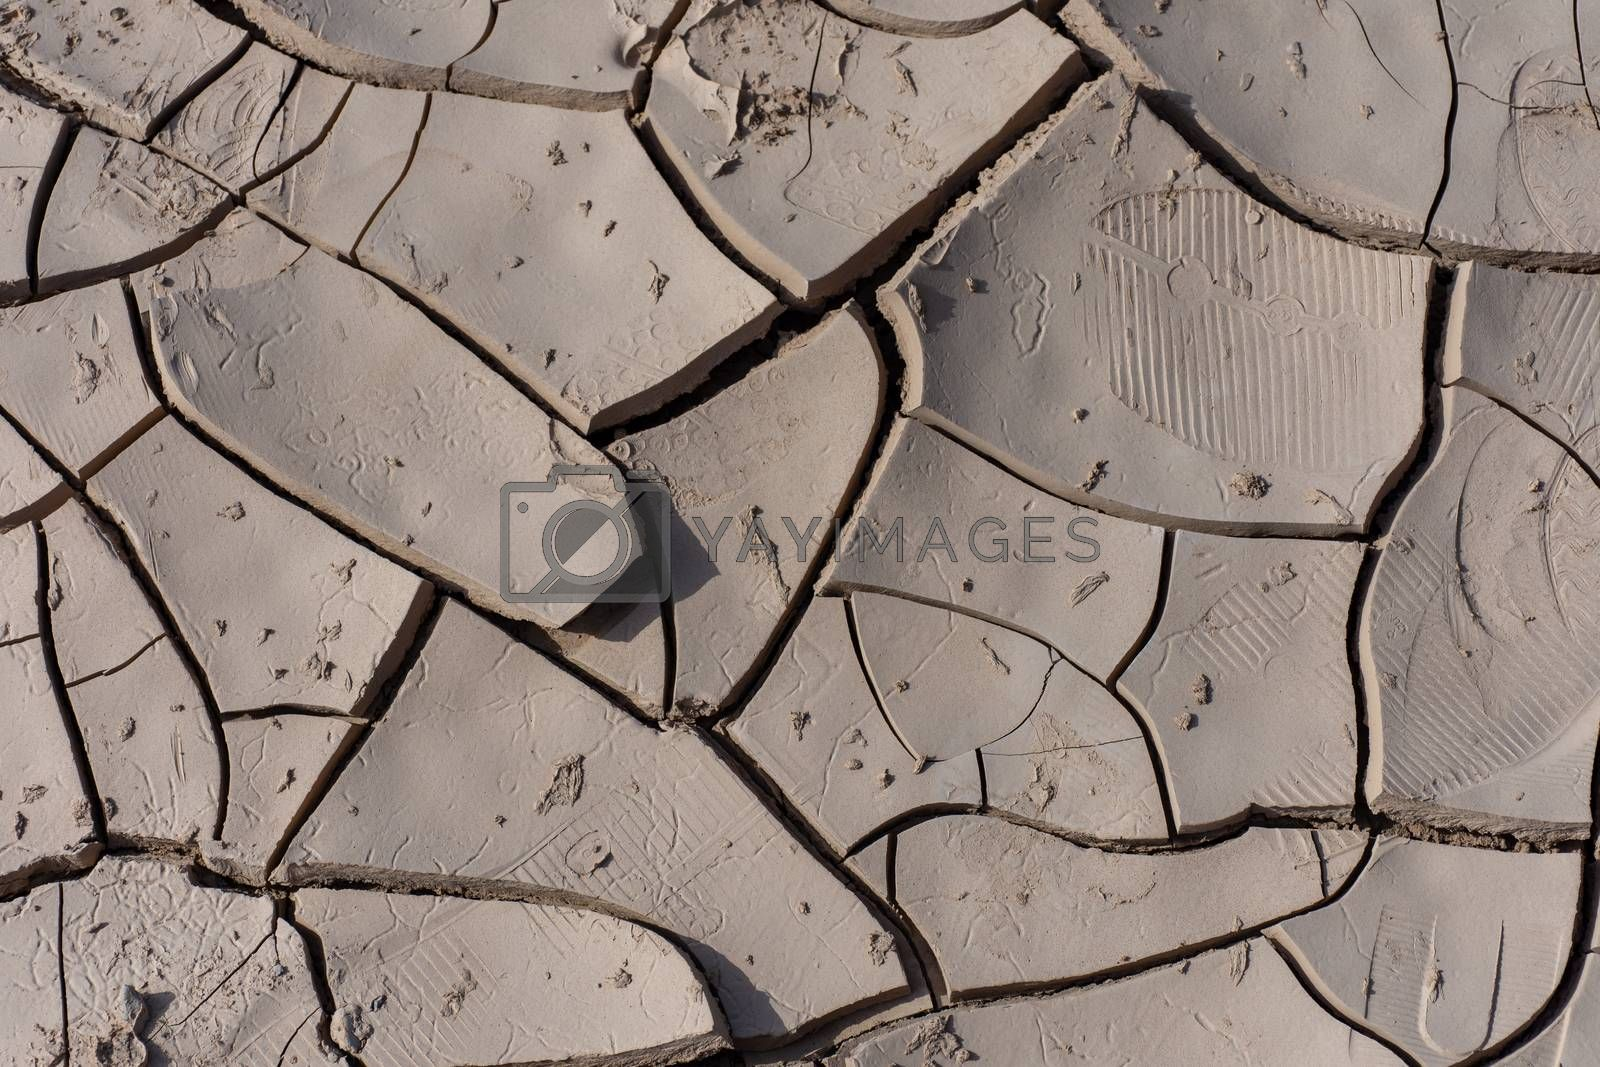 Dried Mud Design in the Sunshine in the desert of the United Arab Emirates (UAE) after a flood and storm near Jebal Jais mountain in Ras al Khaimah.